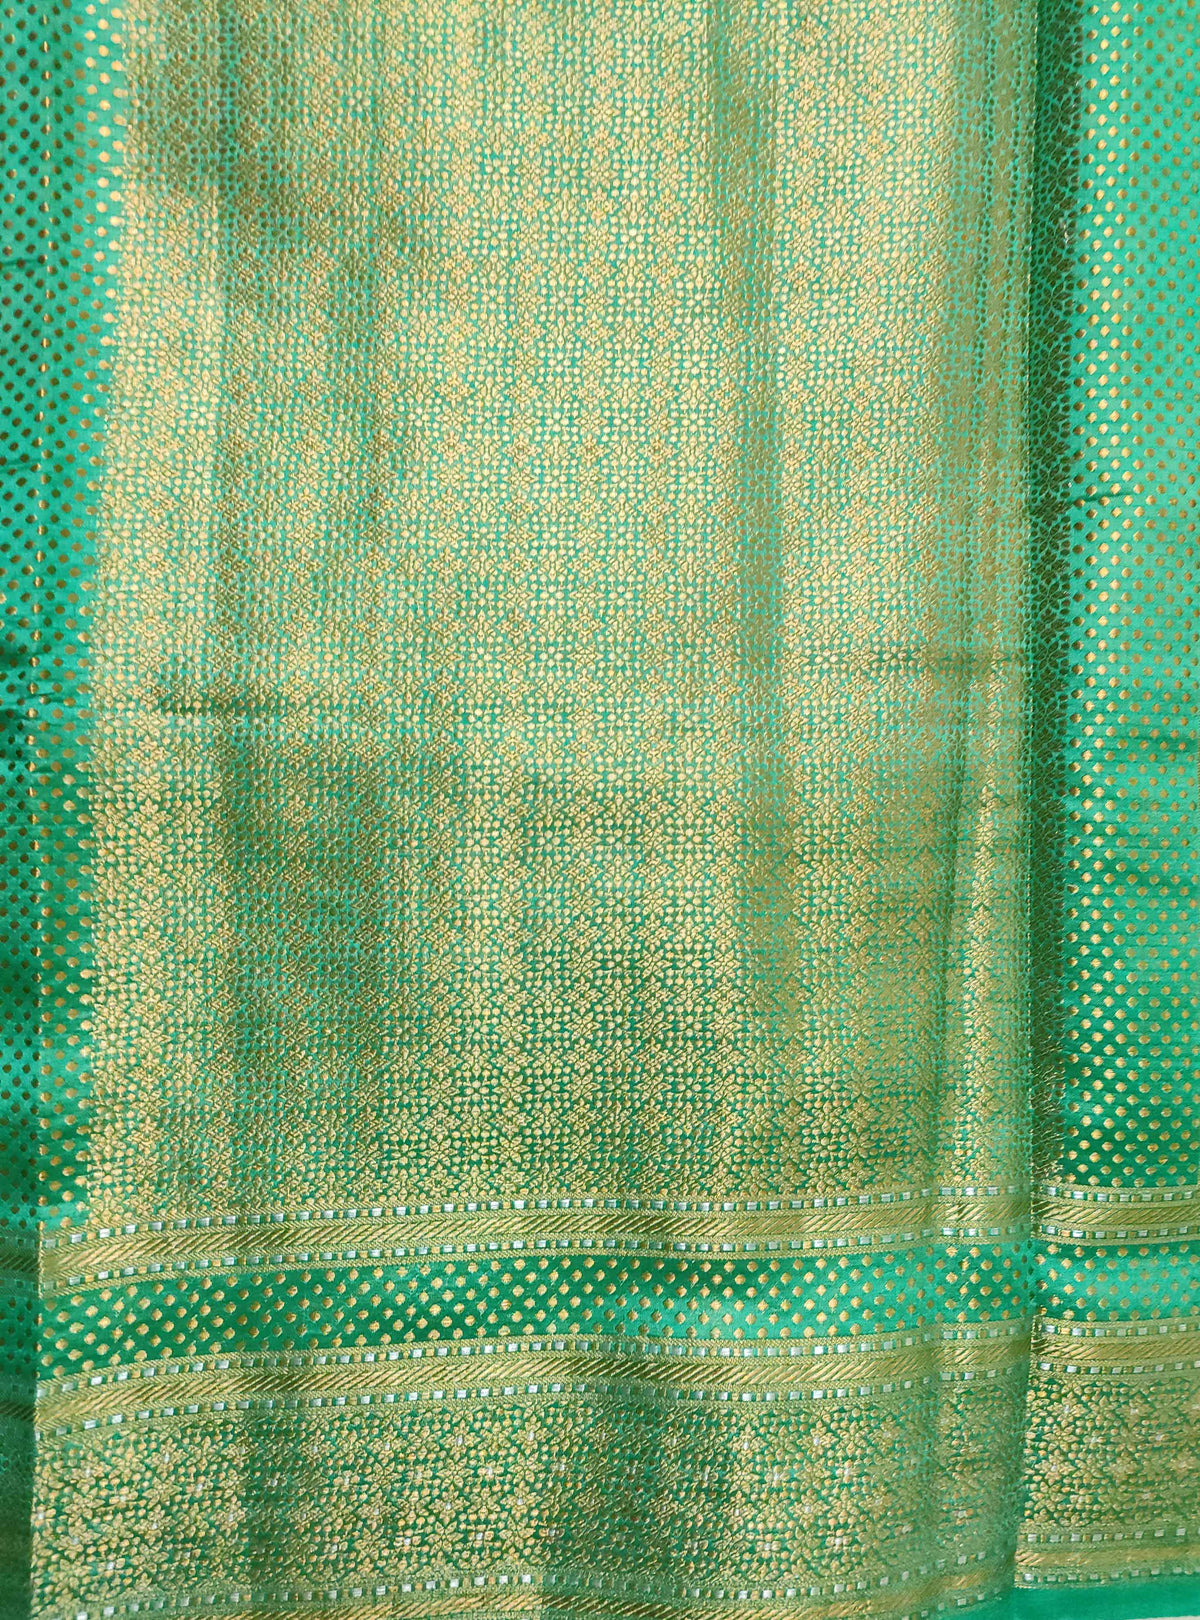 Teal Muga Chiniya silk Banarasi saree with meenedar flower jaal (4) Anchal